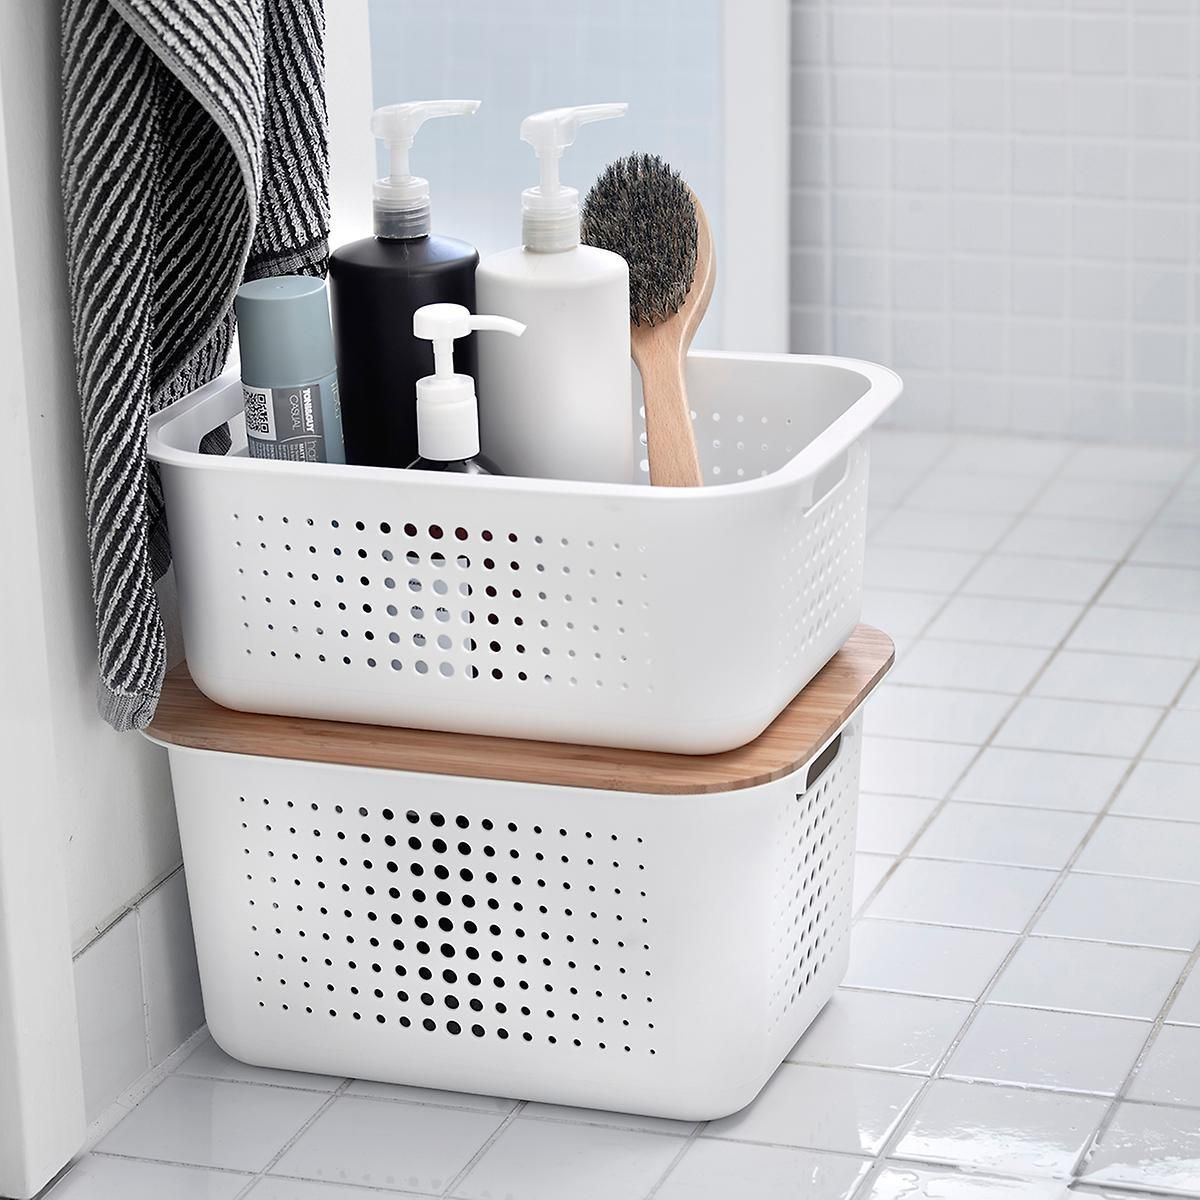 Decorative Bathroom Storage Baskets And Bins To Maximize Small Bathrooms With A Limited Amoun Bathroom Basket Storage Bathroom Organization Diy Storage Baskets